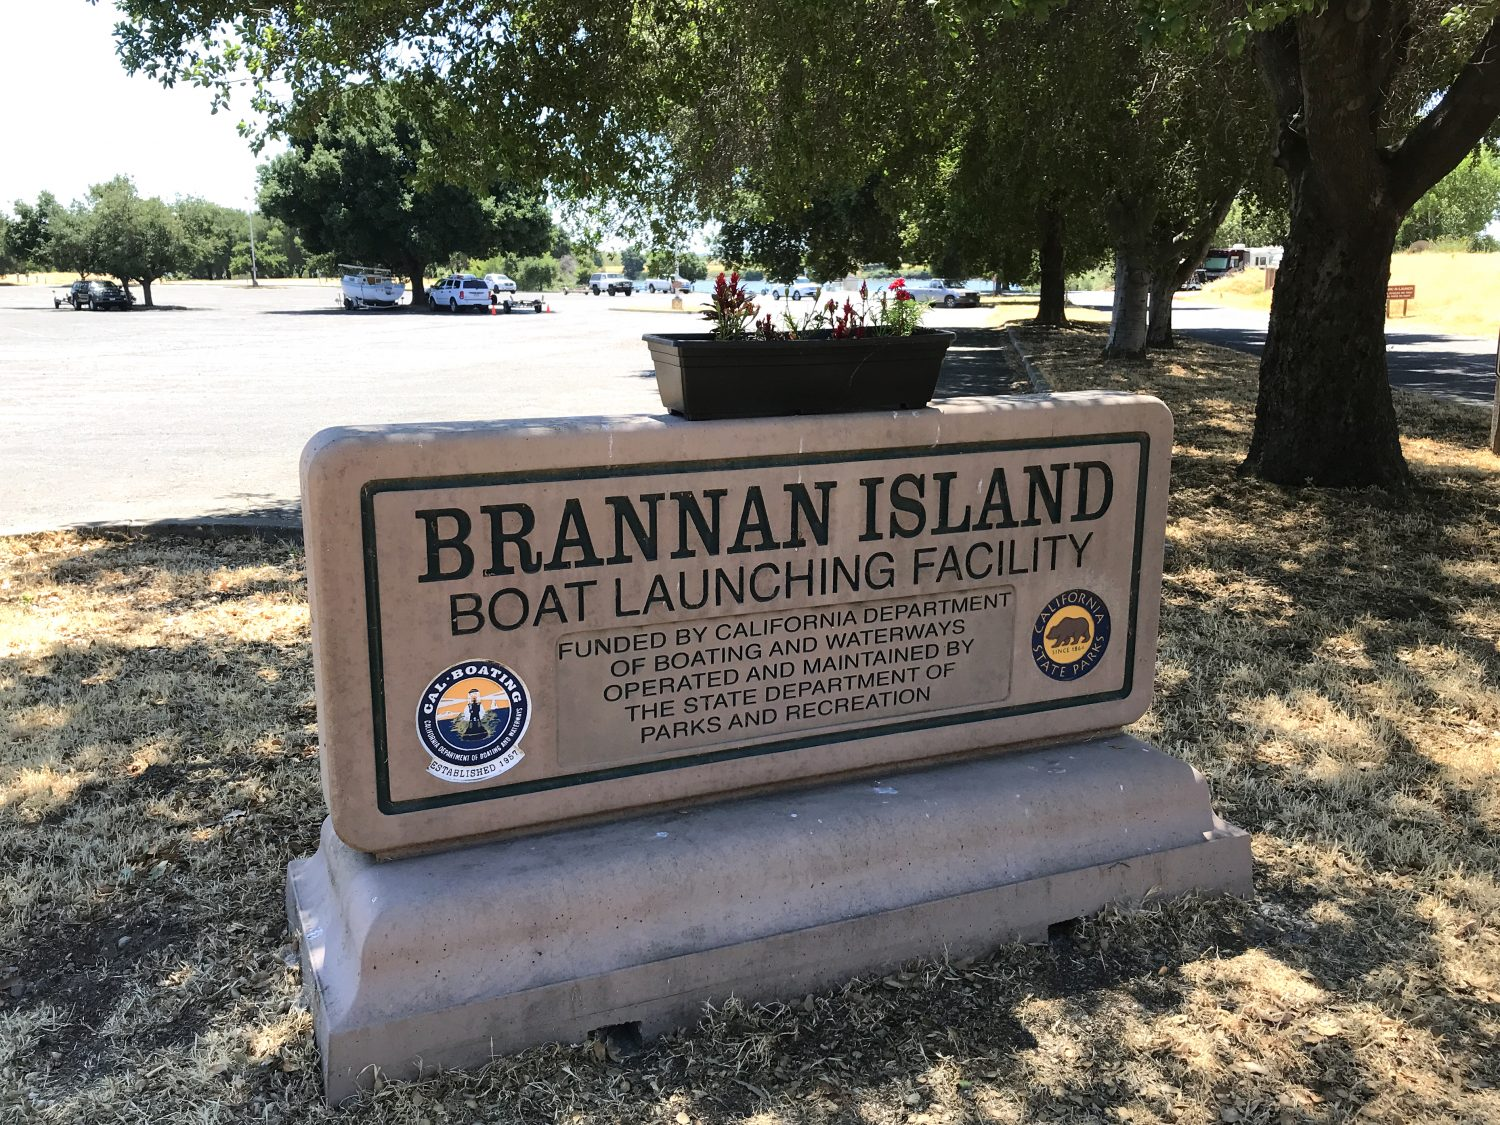 Brannan Island boat launch facility sign